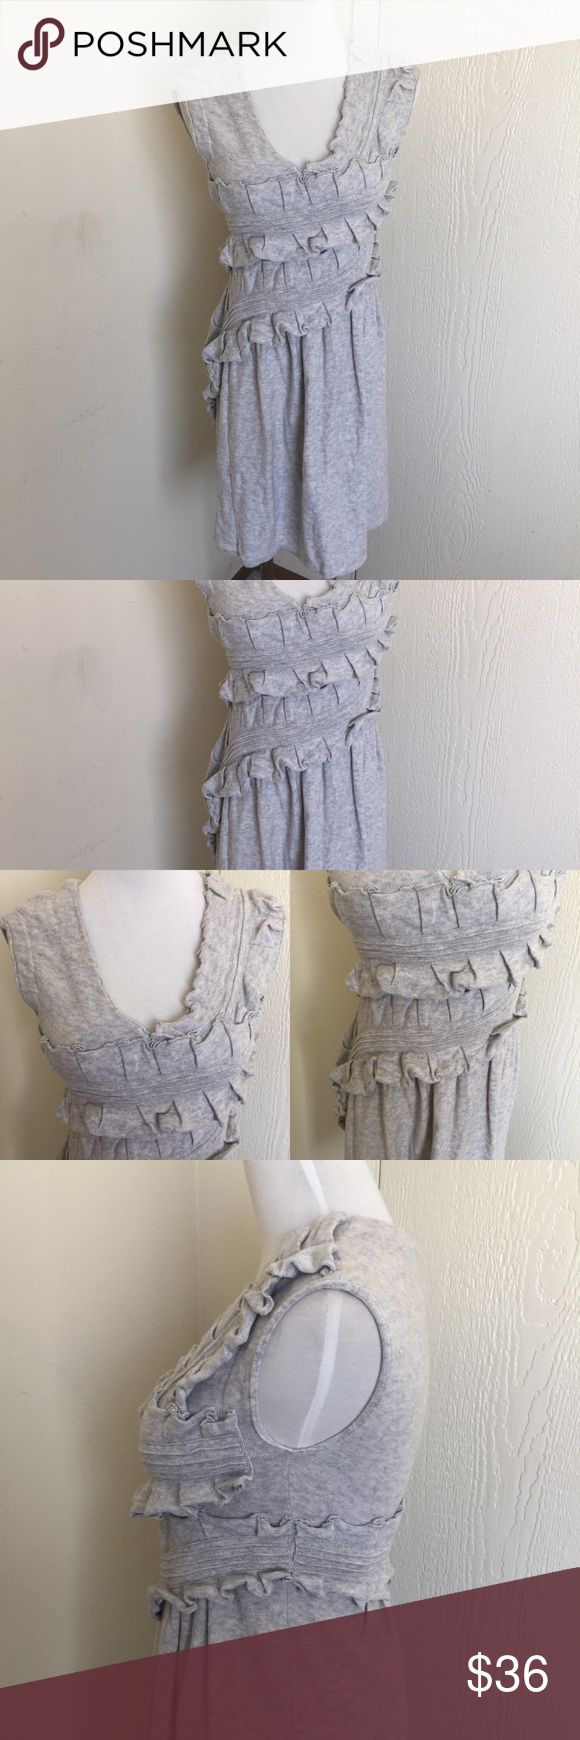 Selling this Anthropologie Knitted & Knotted sweater dress on Poshmark! My username is: 257shay. #shopmycloset #poshmark #fashion #shopping #style #forsale #Anthropologie #Dresses & Skirts